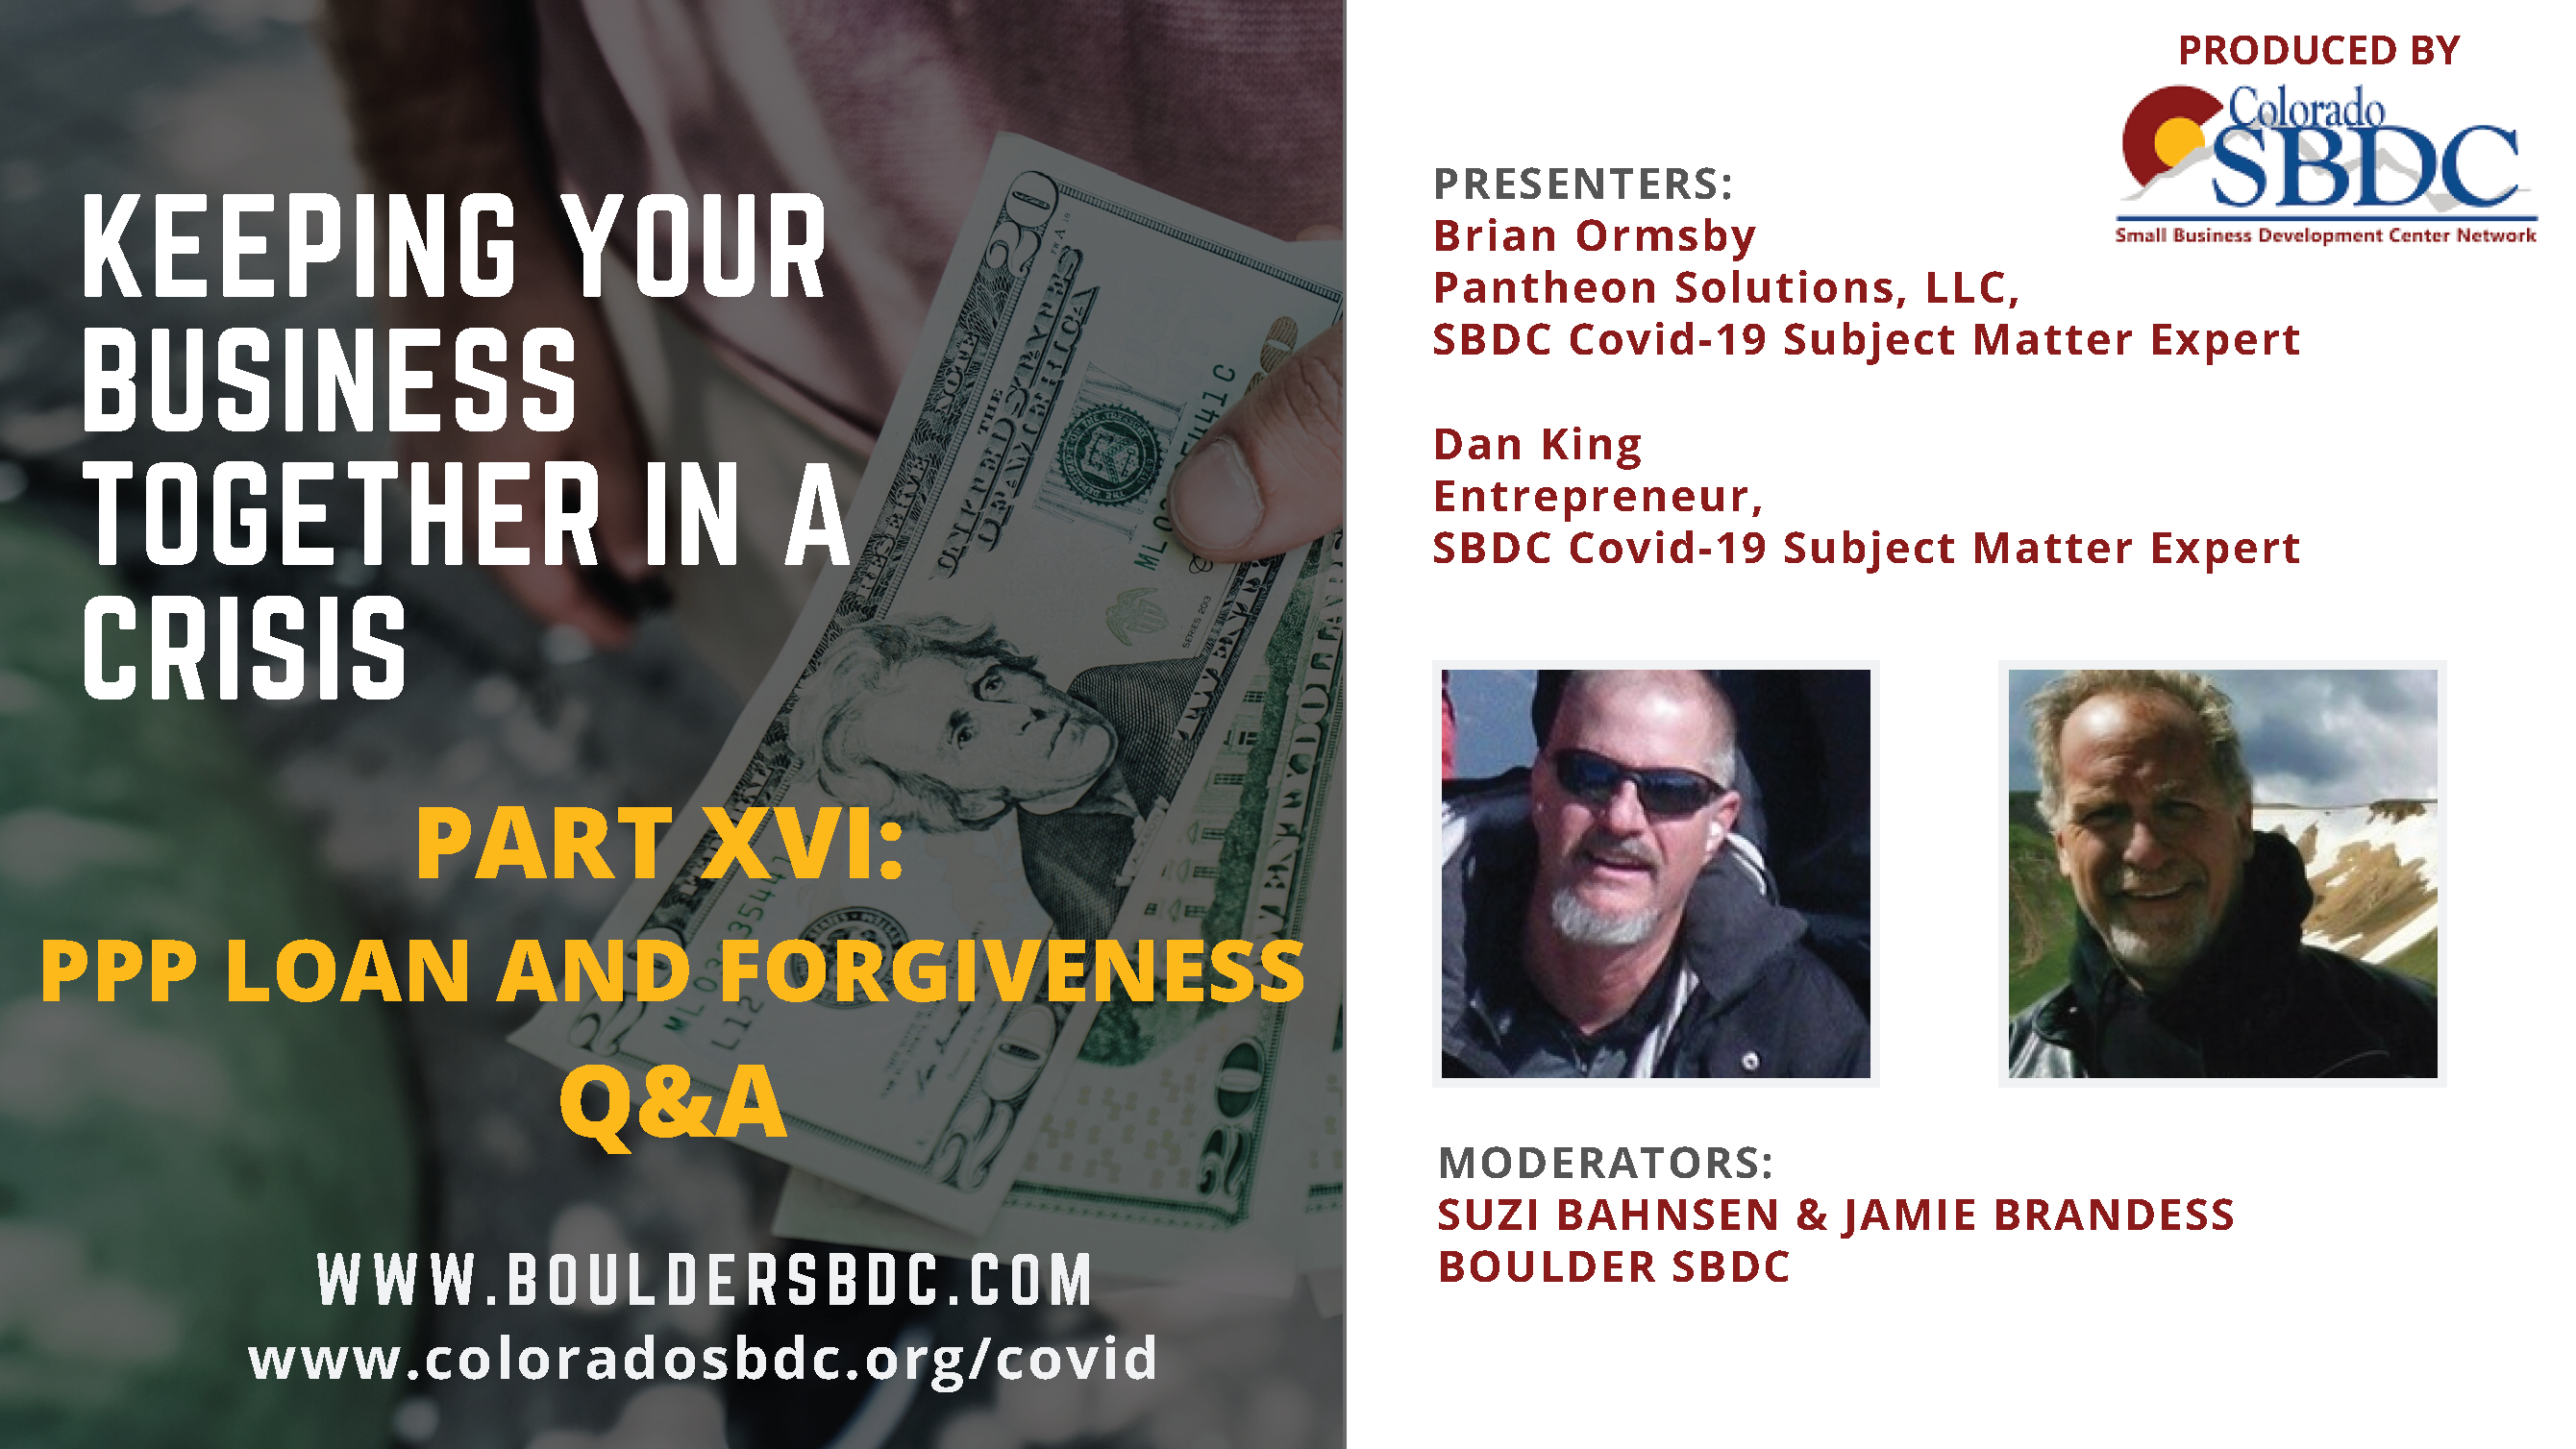 PPP LOAN AND FORGIVENESS Q&A